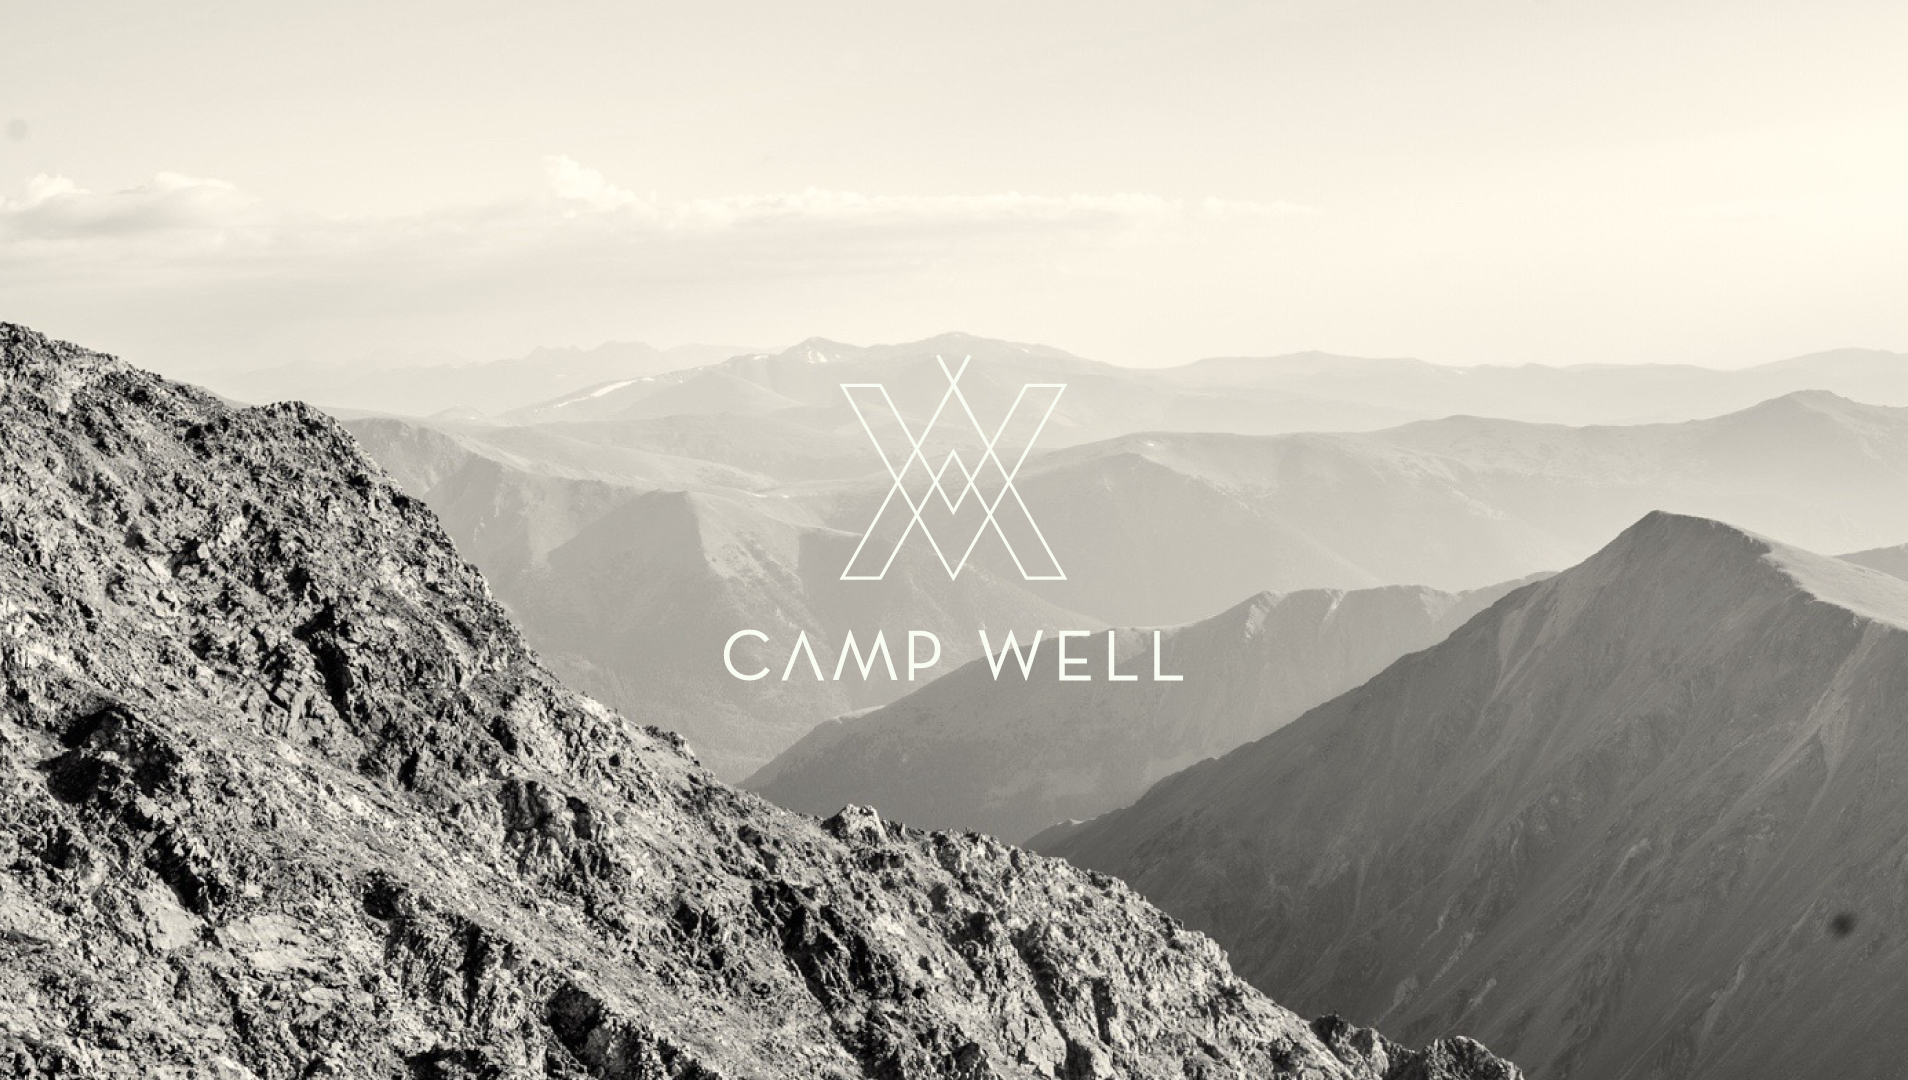 Camp-Well-BW-Video-image-49